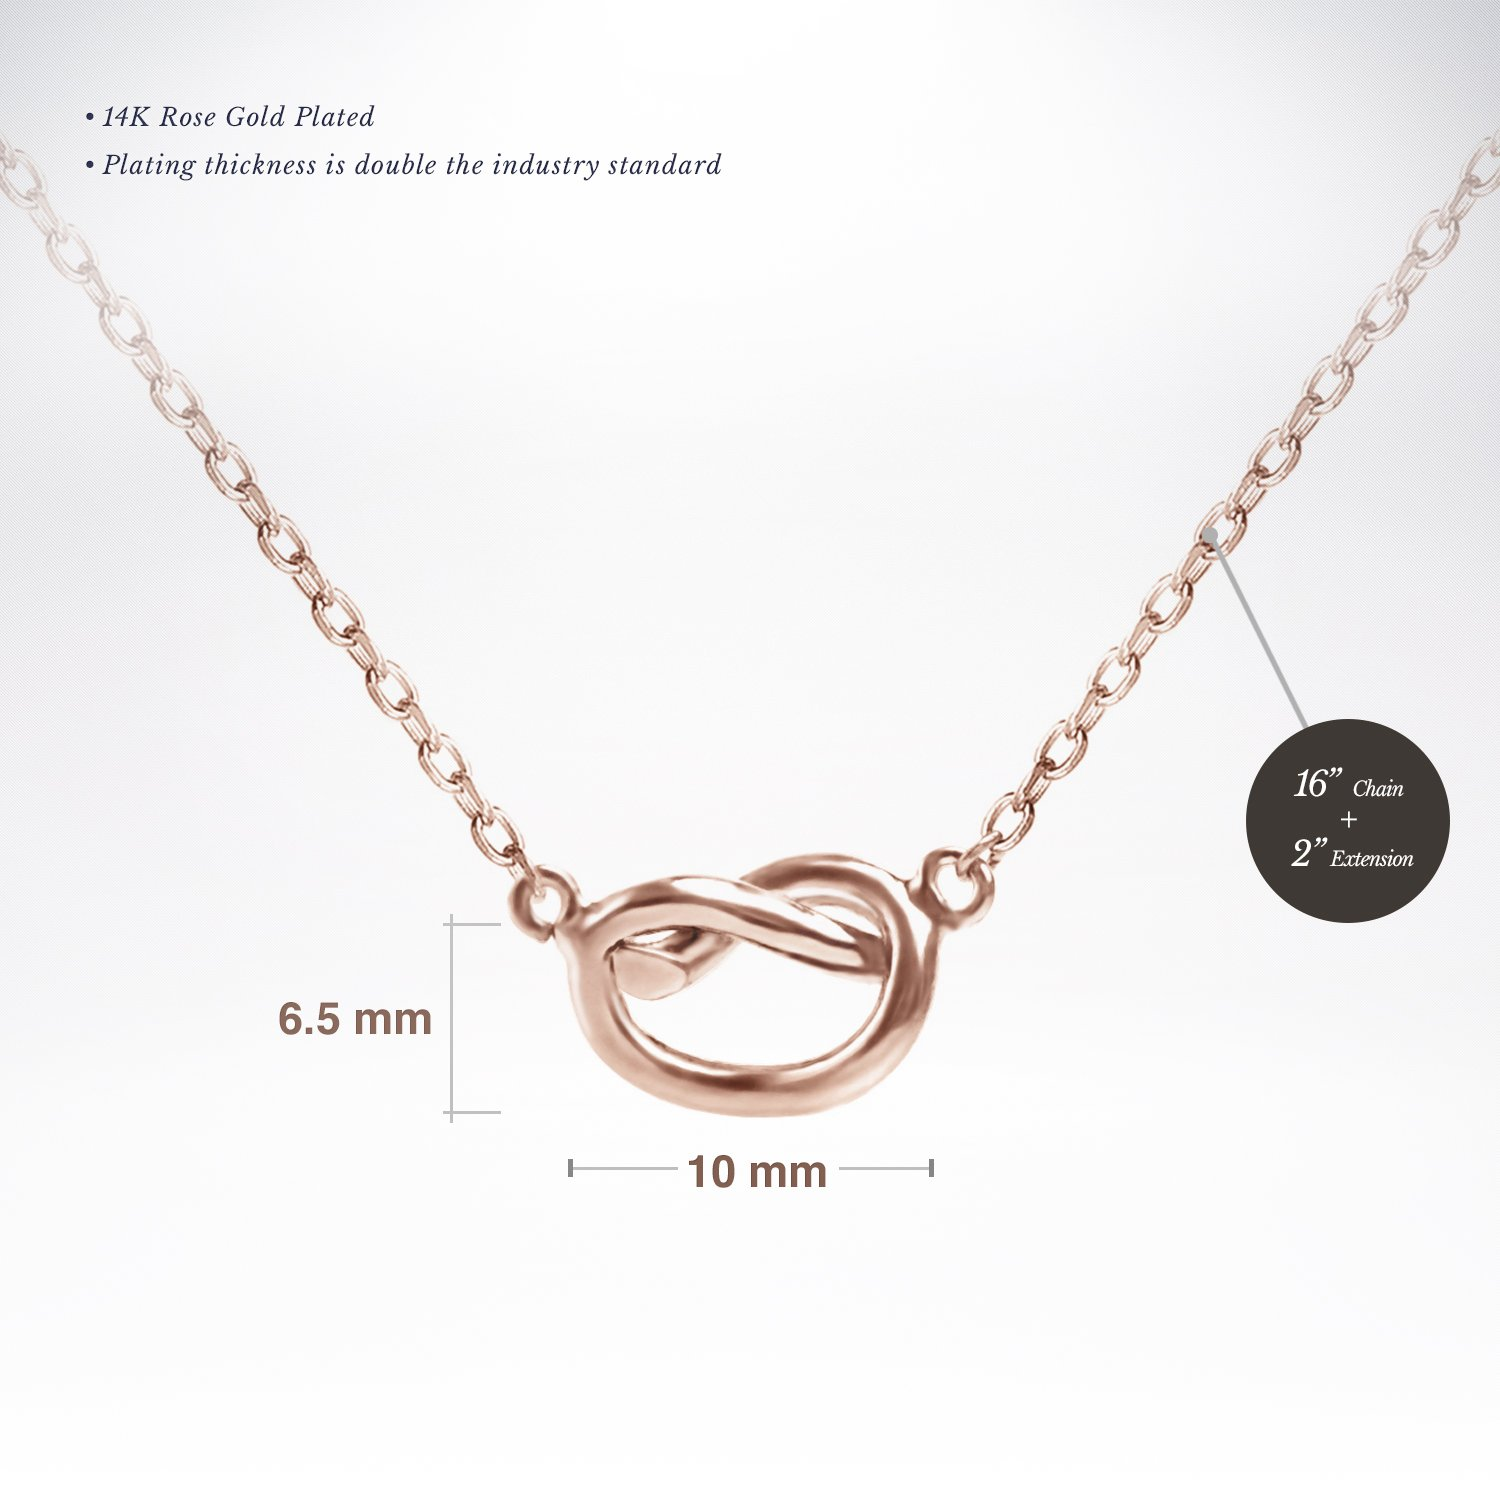 a6620b1e53029 PAVOI 14K Gold Plated Infinity Necklace | Bridesmaids Gifts | Gold  Necklaces for Women